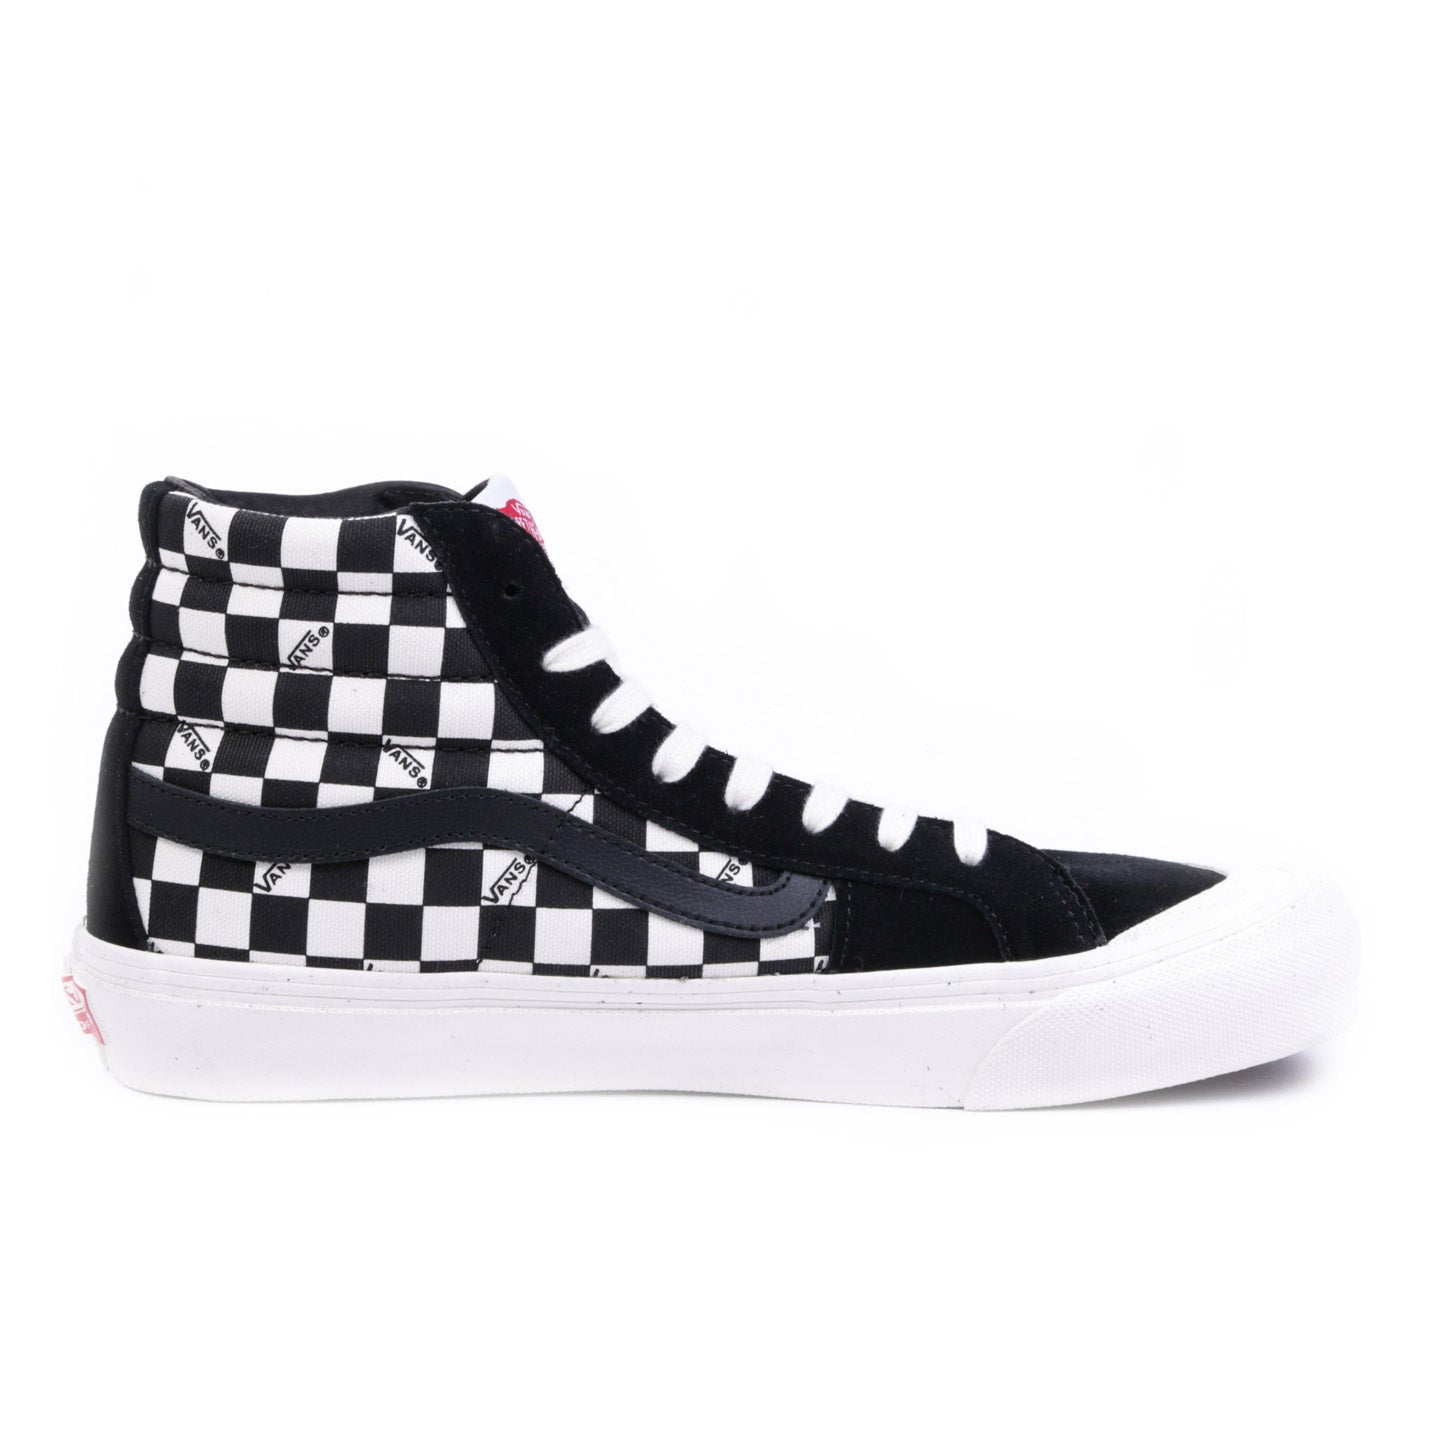 VAULT BY VANS OG STYLE 138 LX BLACK / CHECKERBOARD